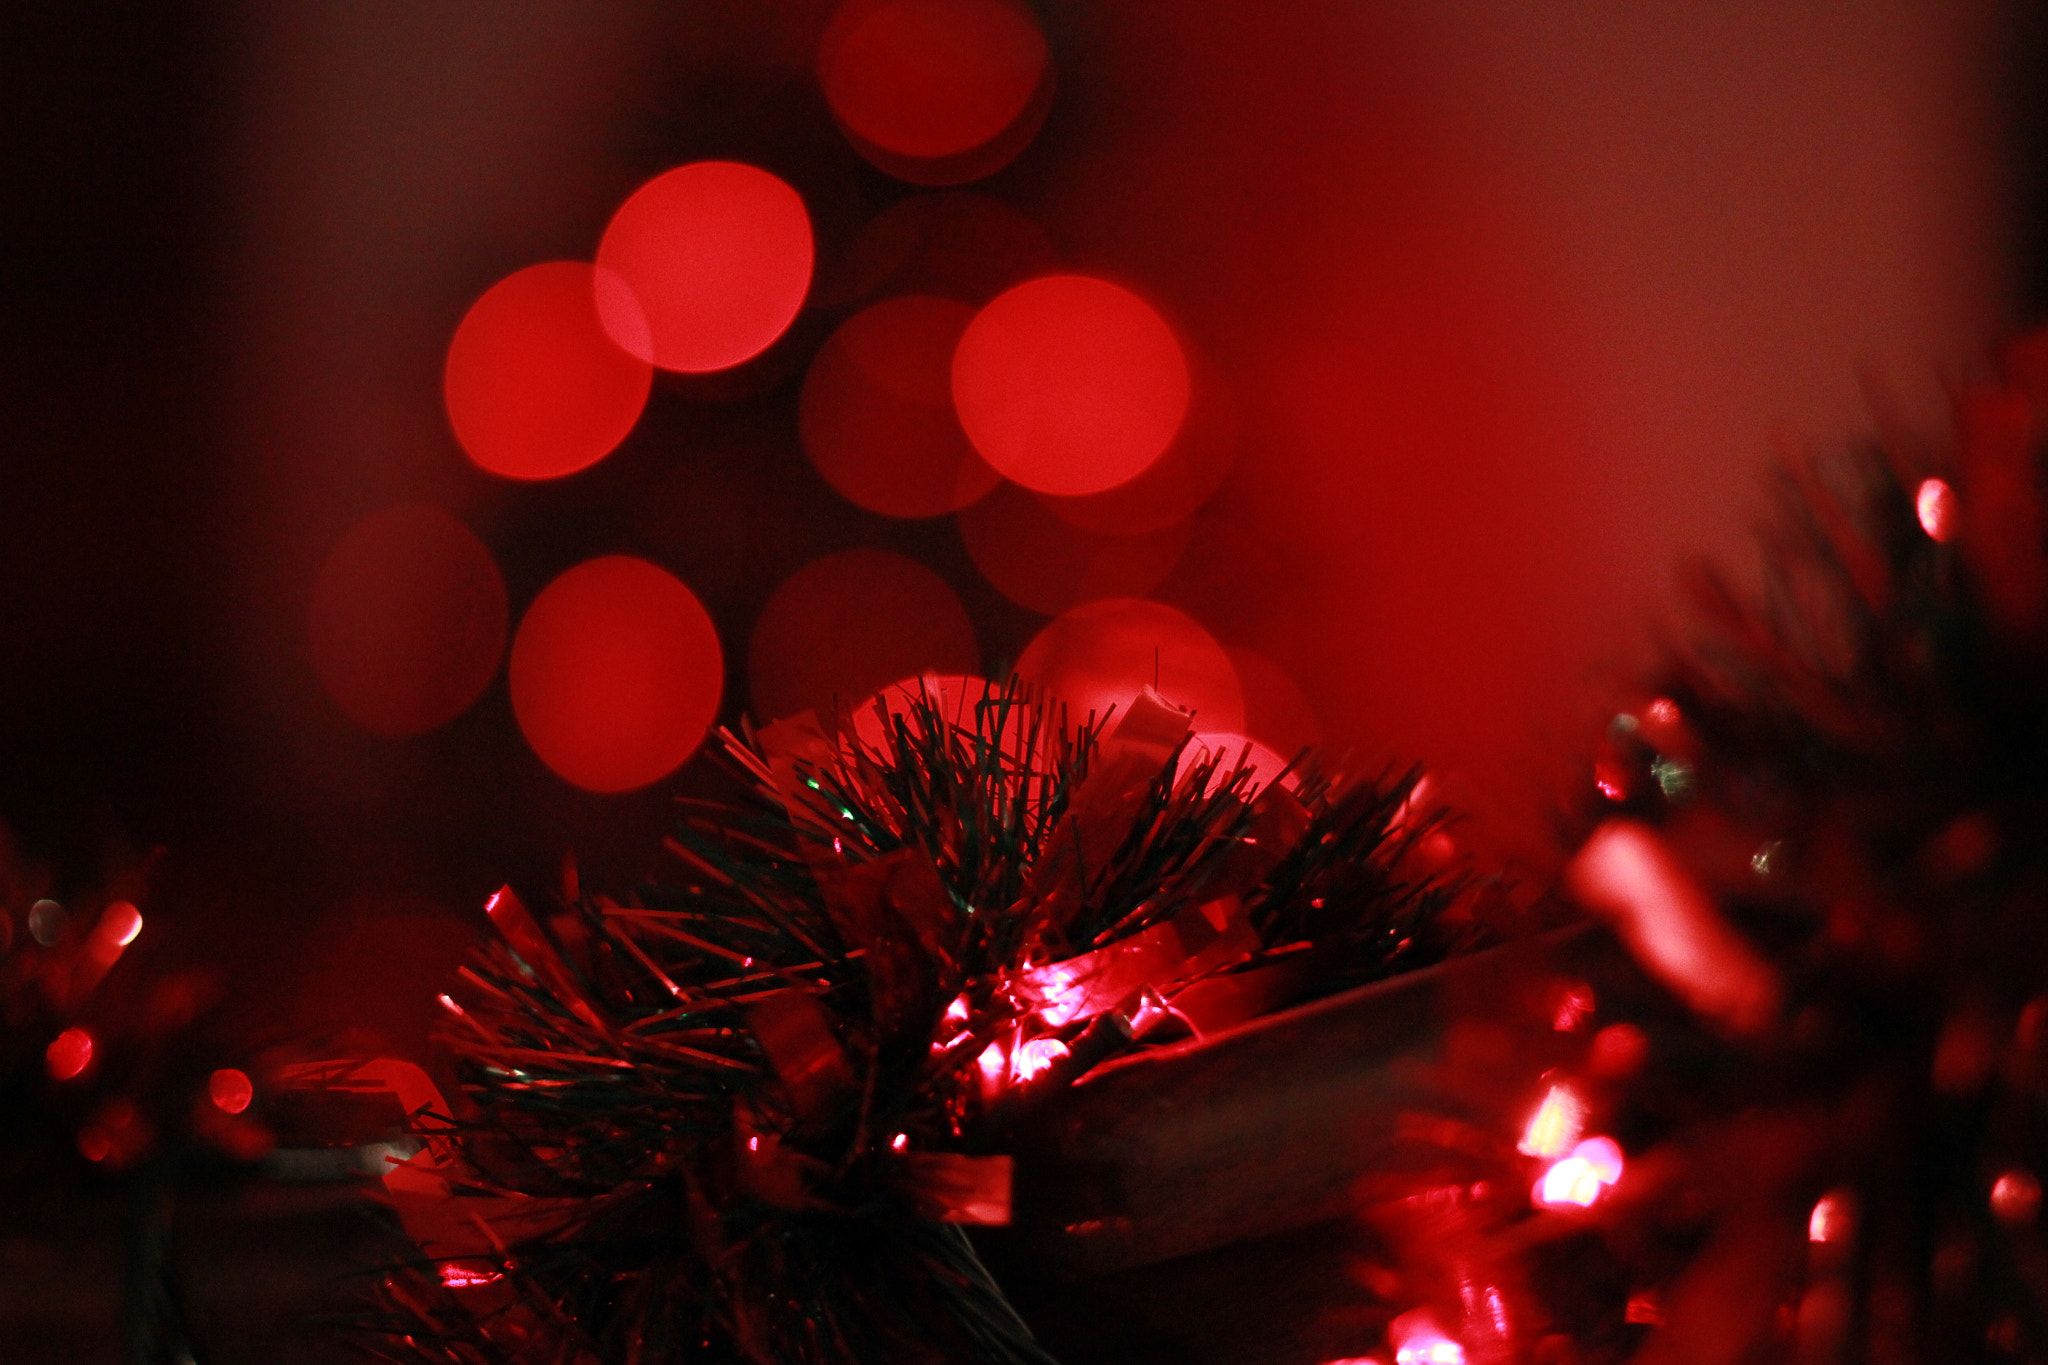 Photograph Merry Christmas Again by Christopher Pichelin on 500px